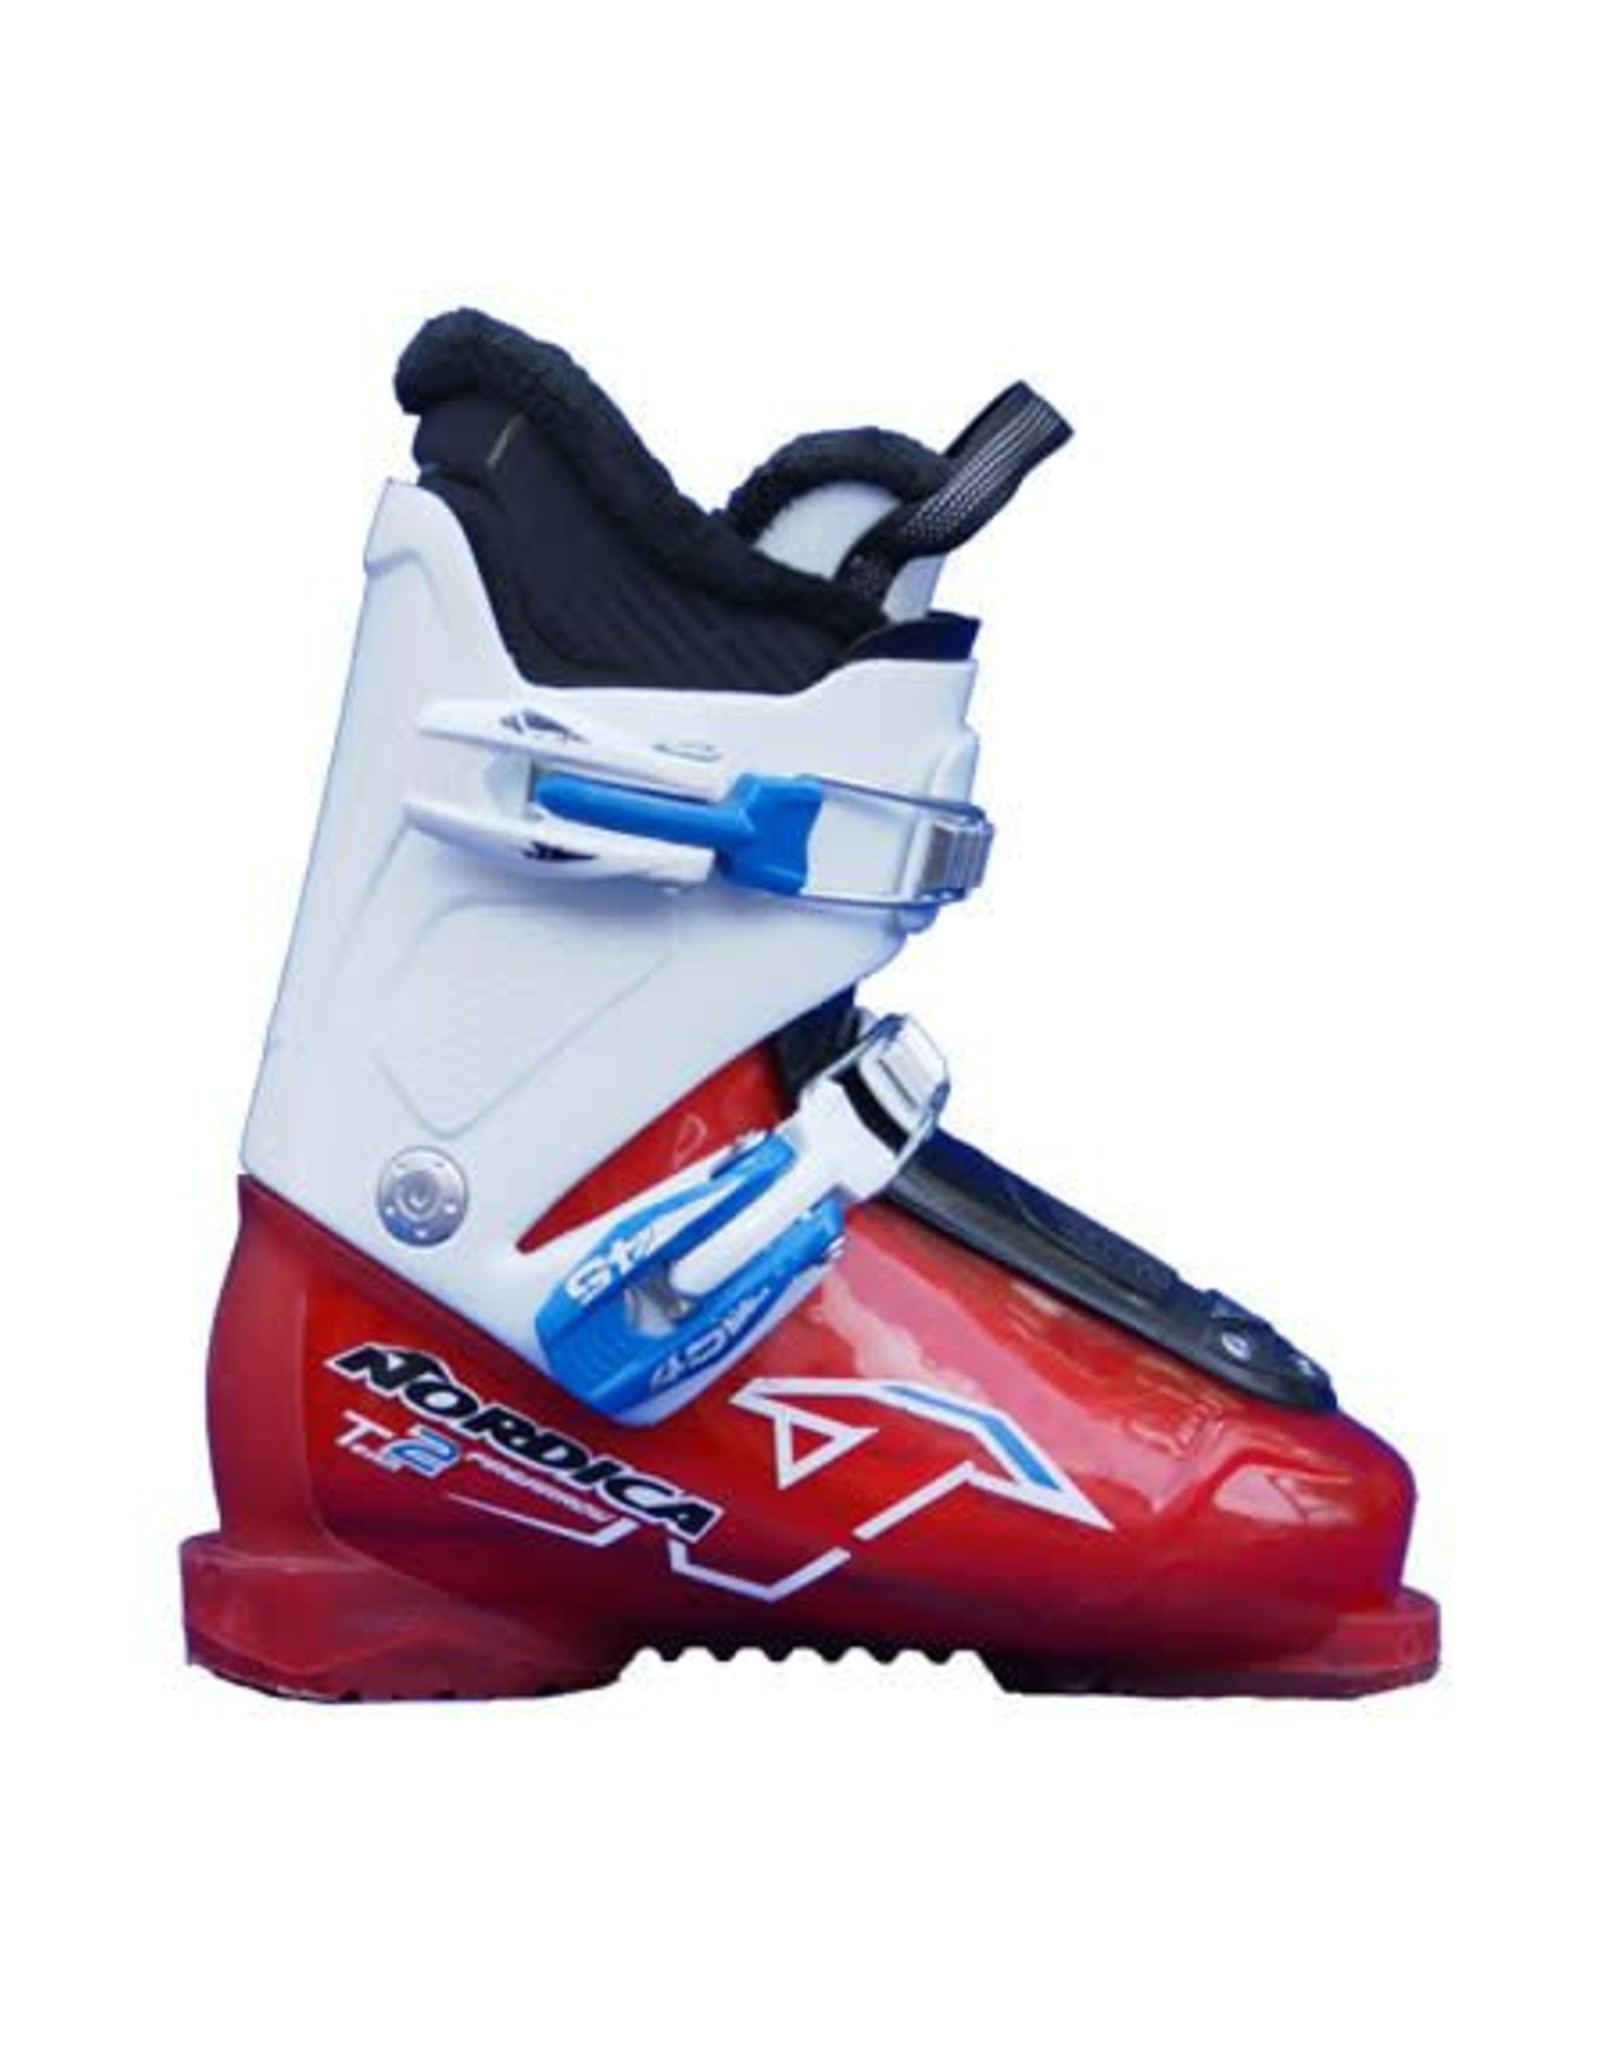 NORDICA Skischoenen NORDICA Fire Arrow Team 2 Gebruikt